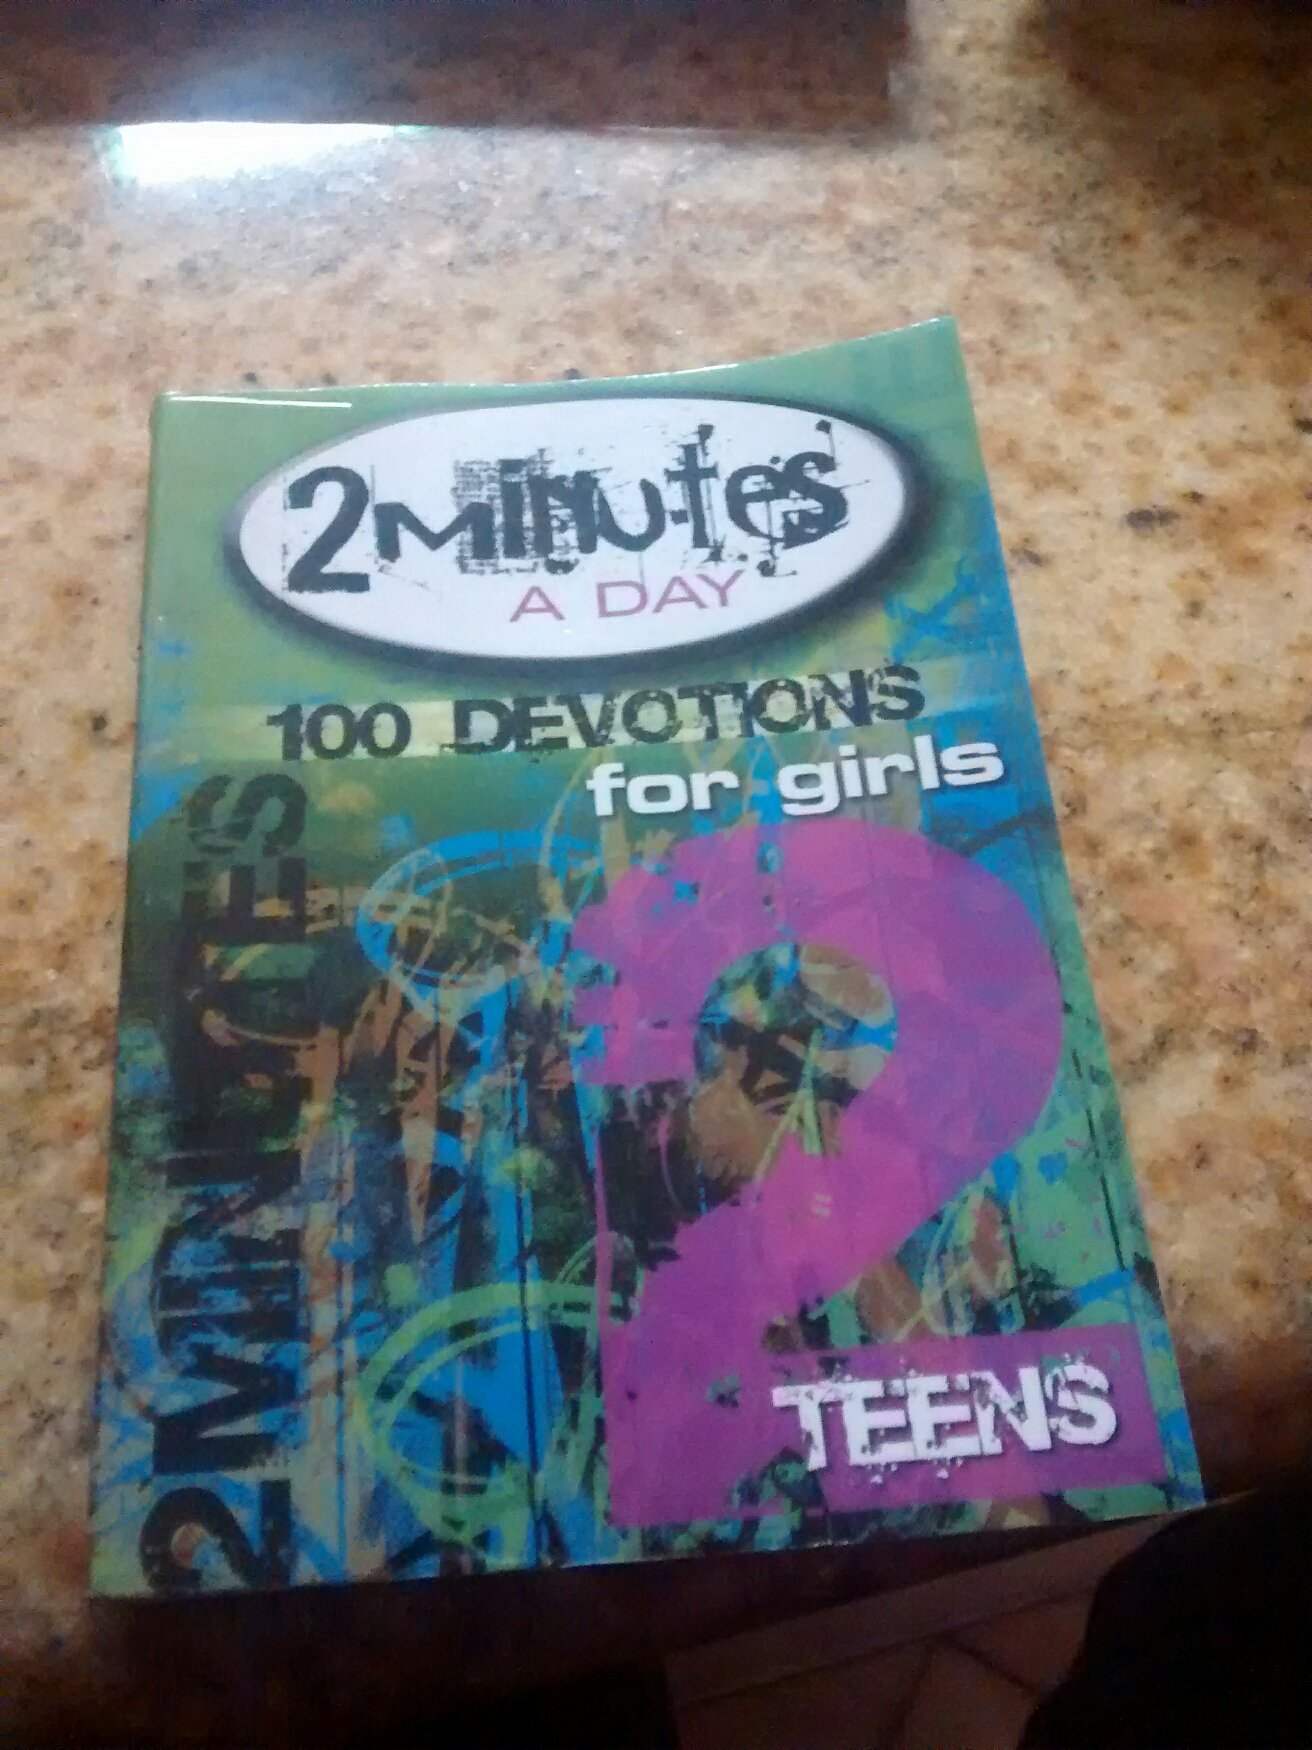 2 minute devotions for teens